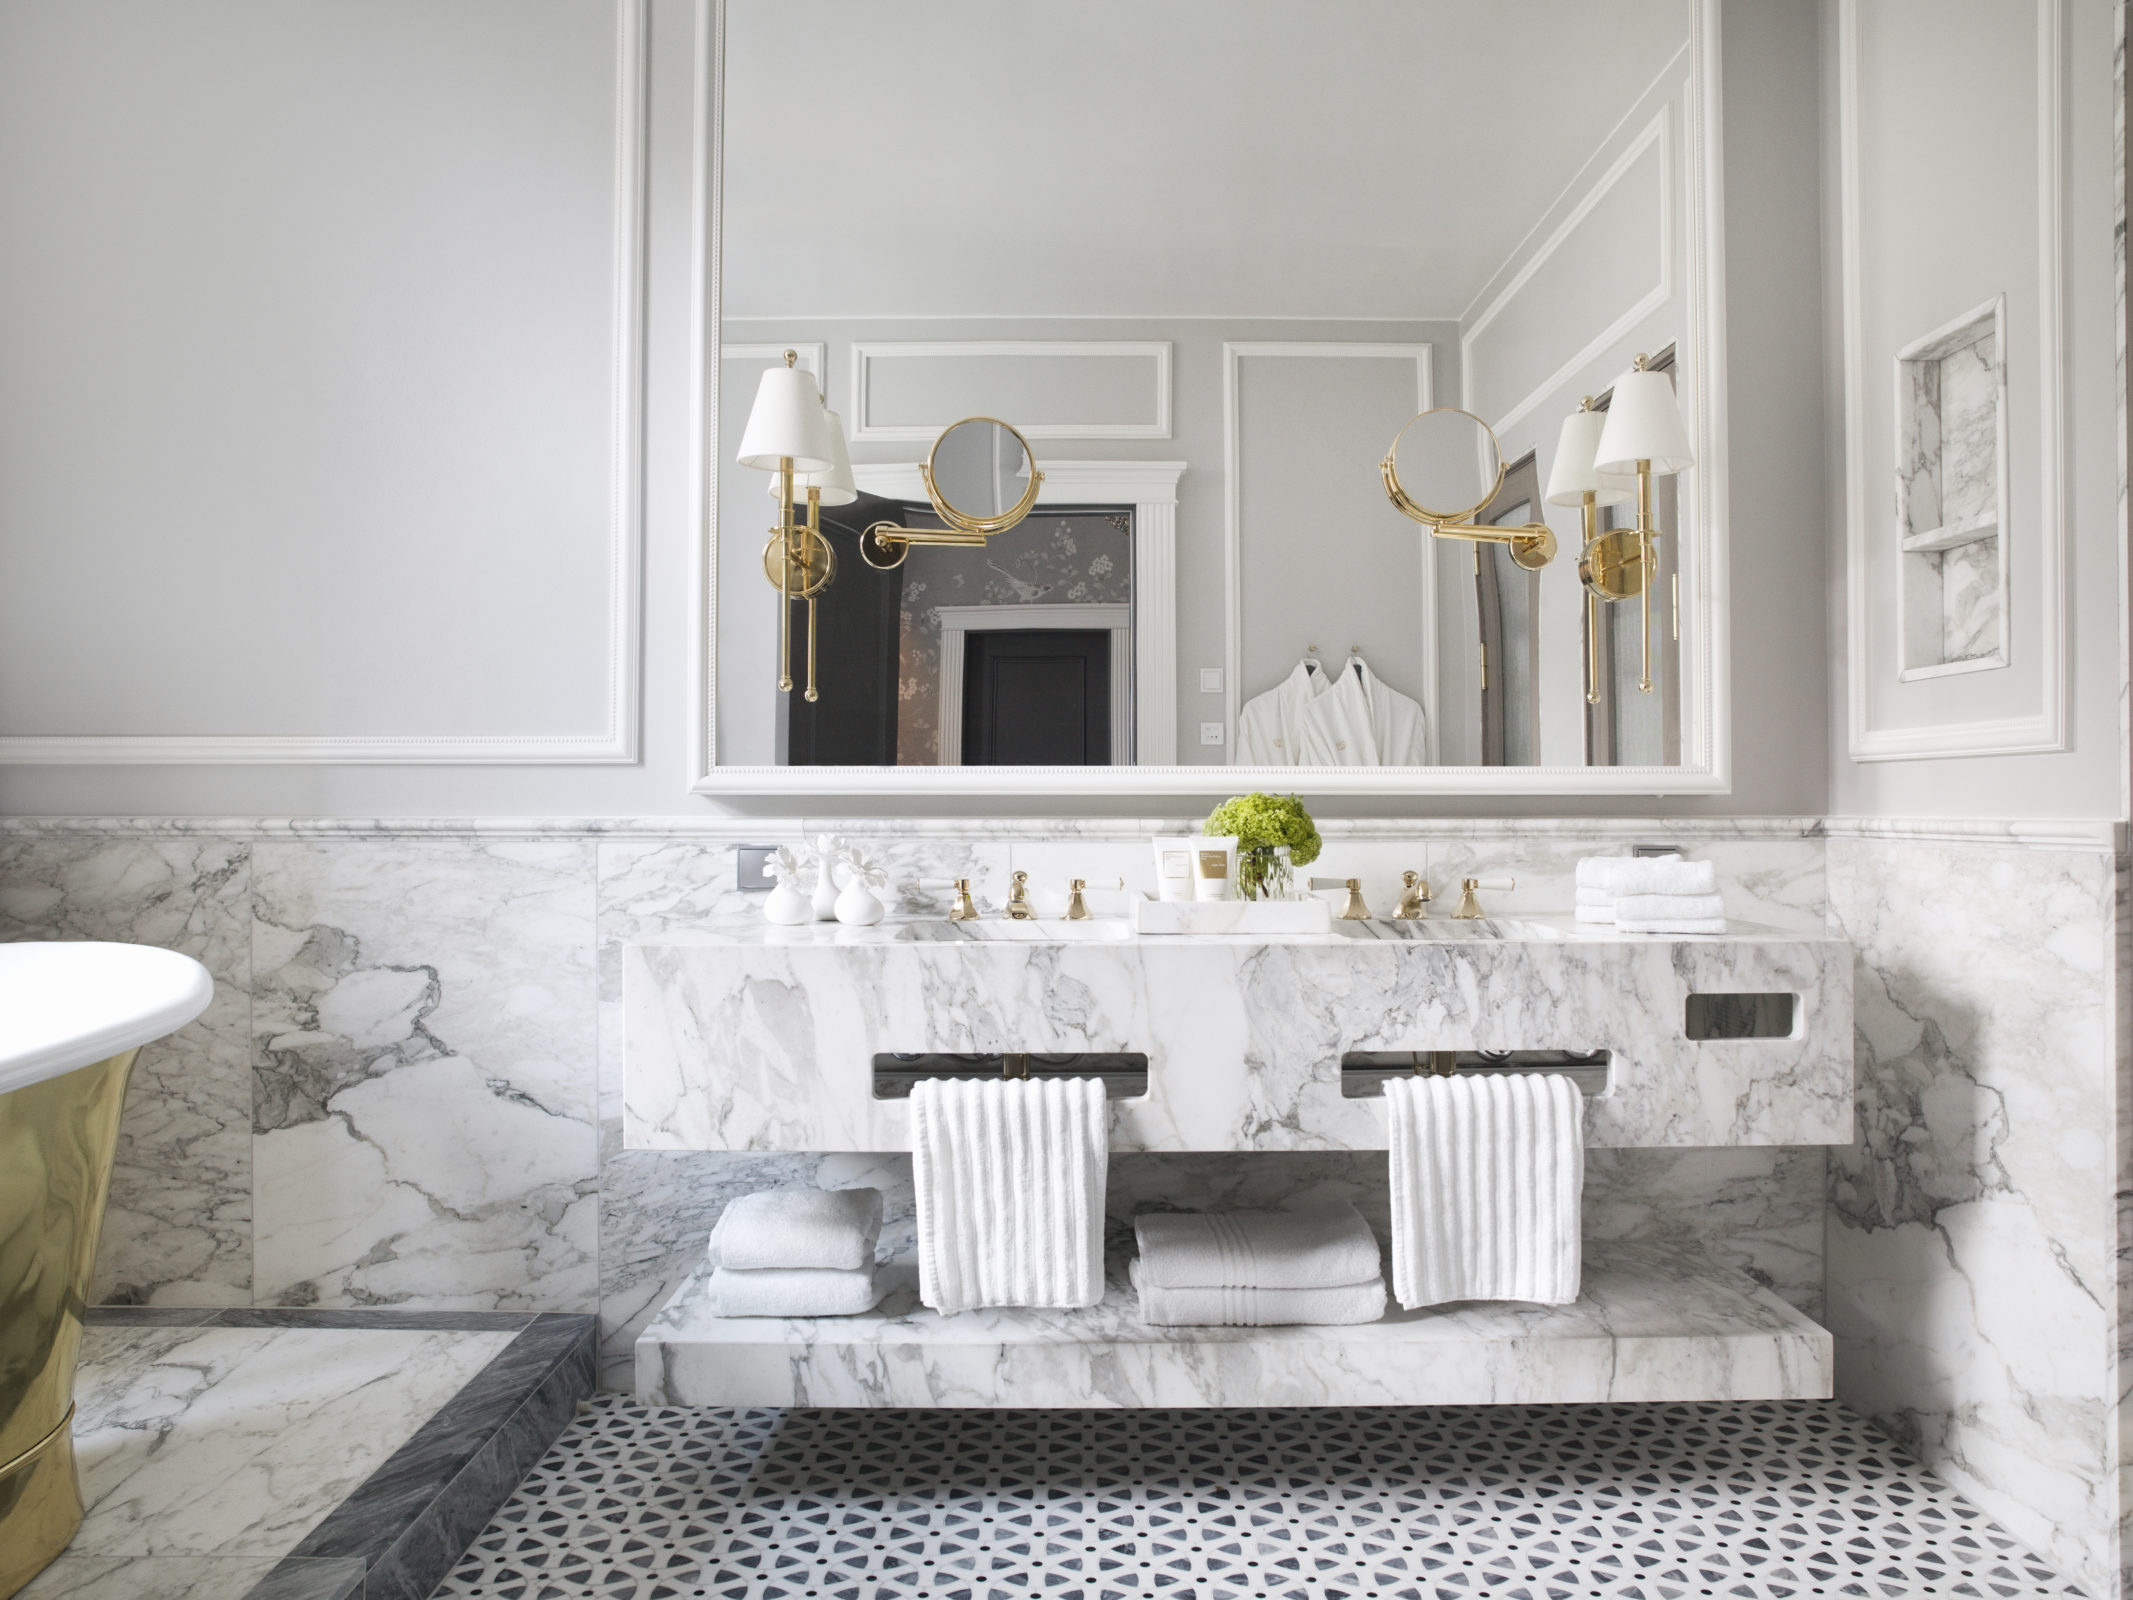 Britannia Hotel in Trondheim's Signature Suite styled by Metropolis Interior Architects. Master en-suite bathroom., with Carrera marble throughout.